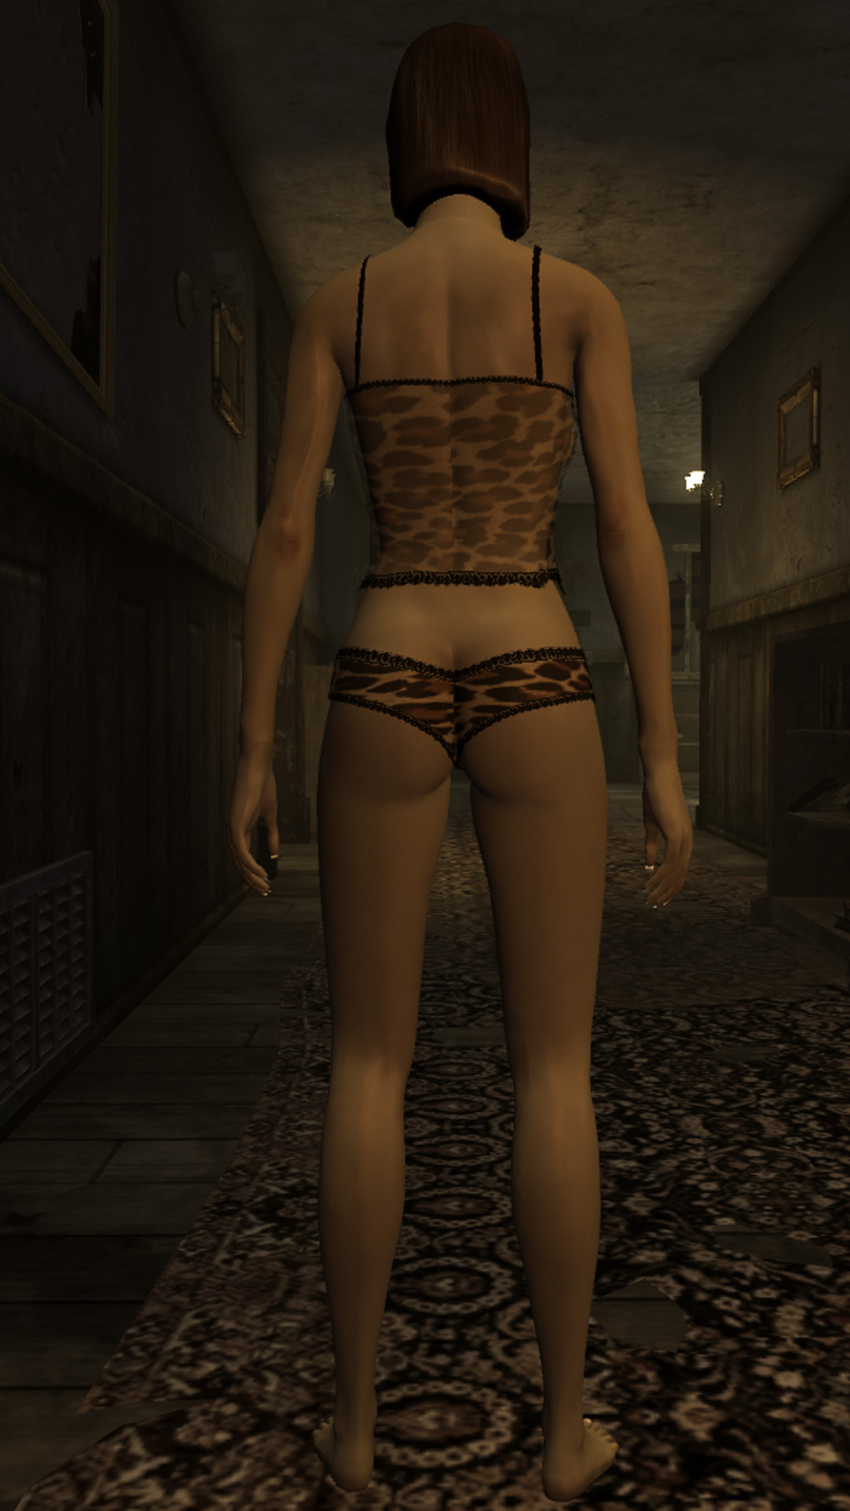 sarah weintraub fallout vegas new State of decay nude mod